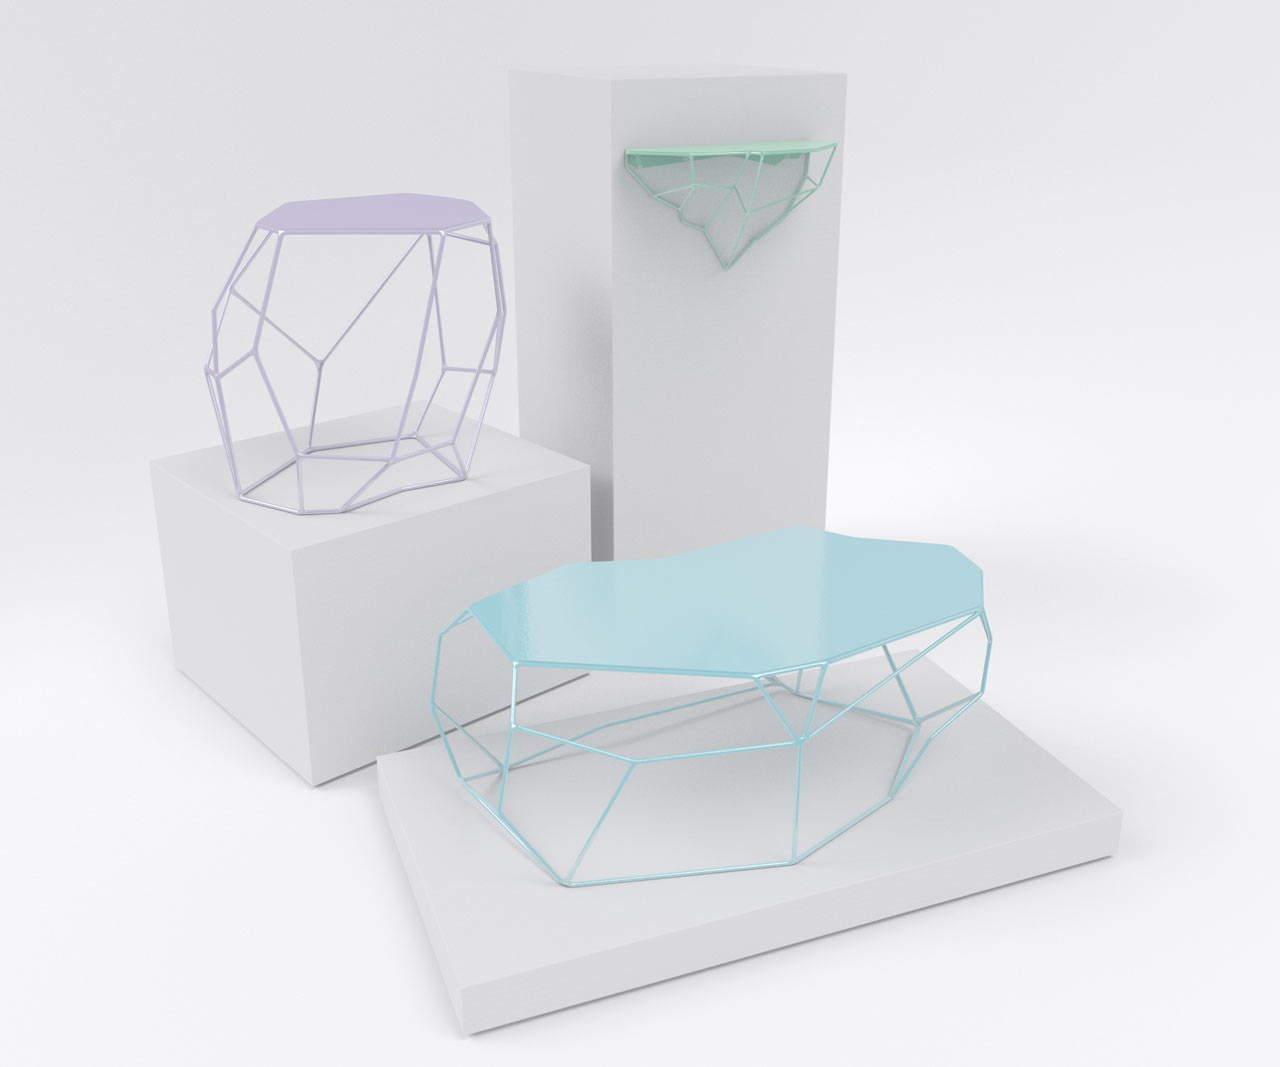 A Set of Tables Inspired by Rock Formations